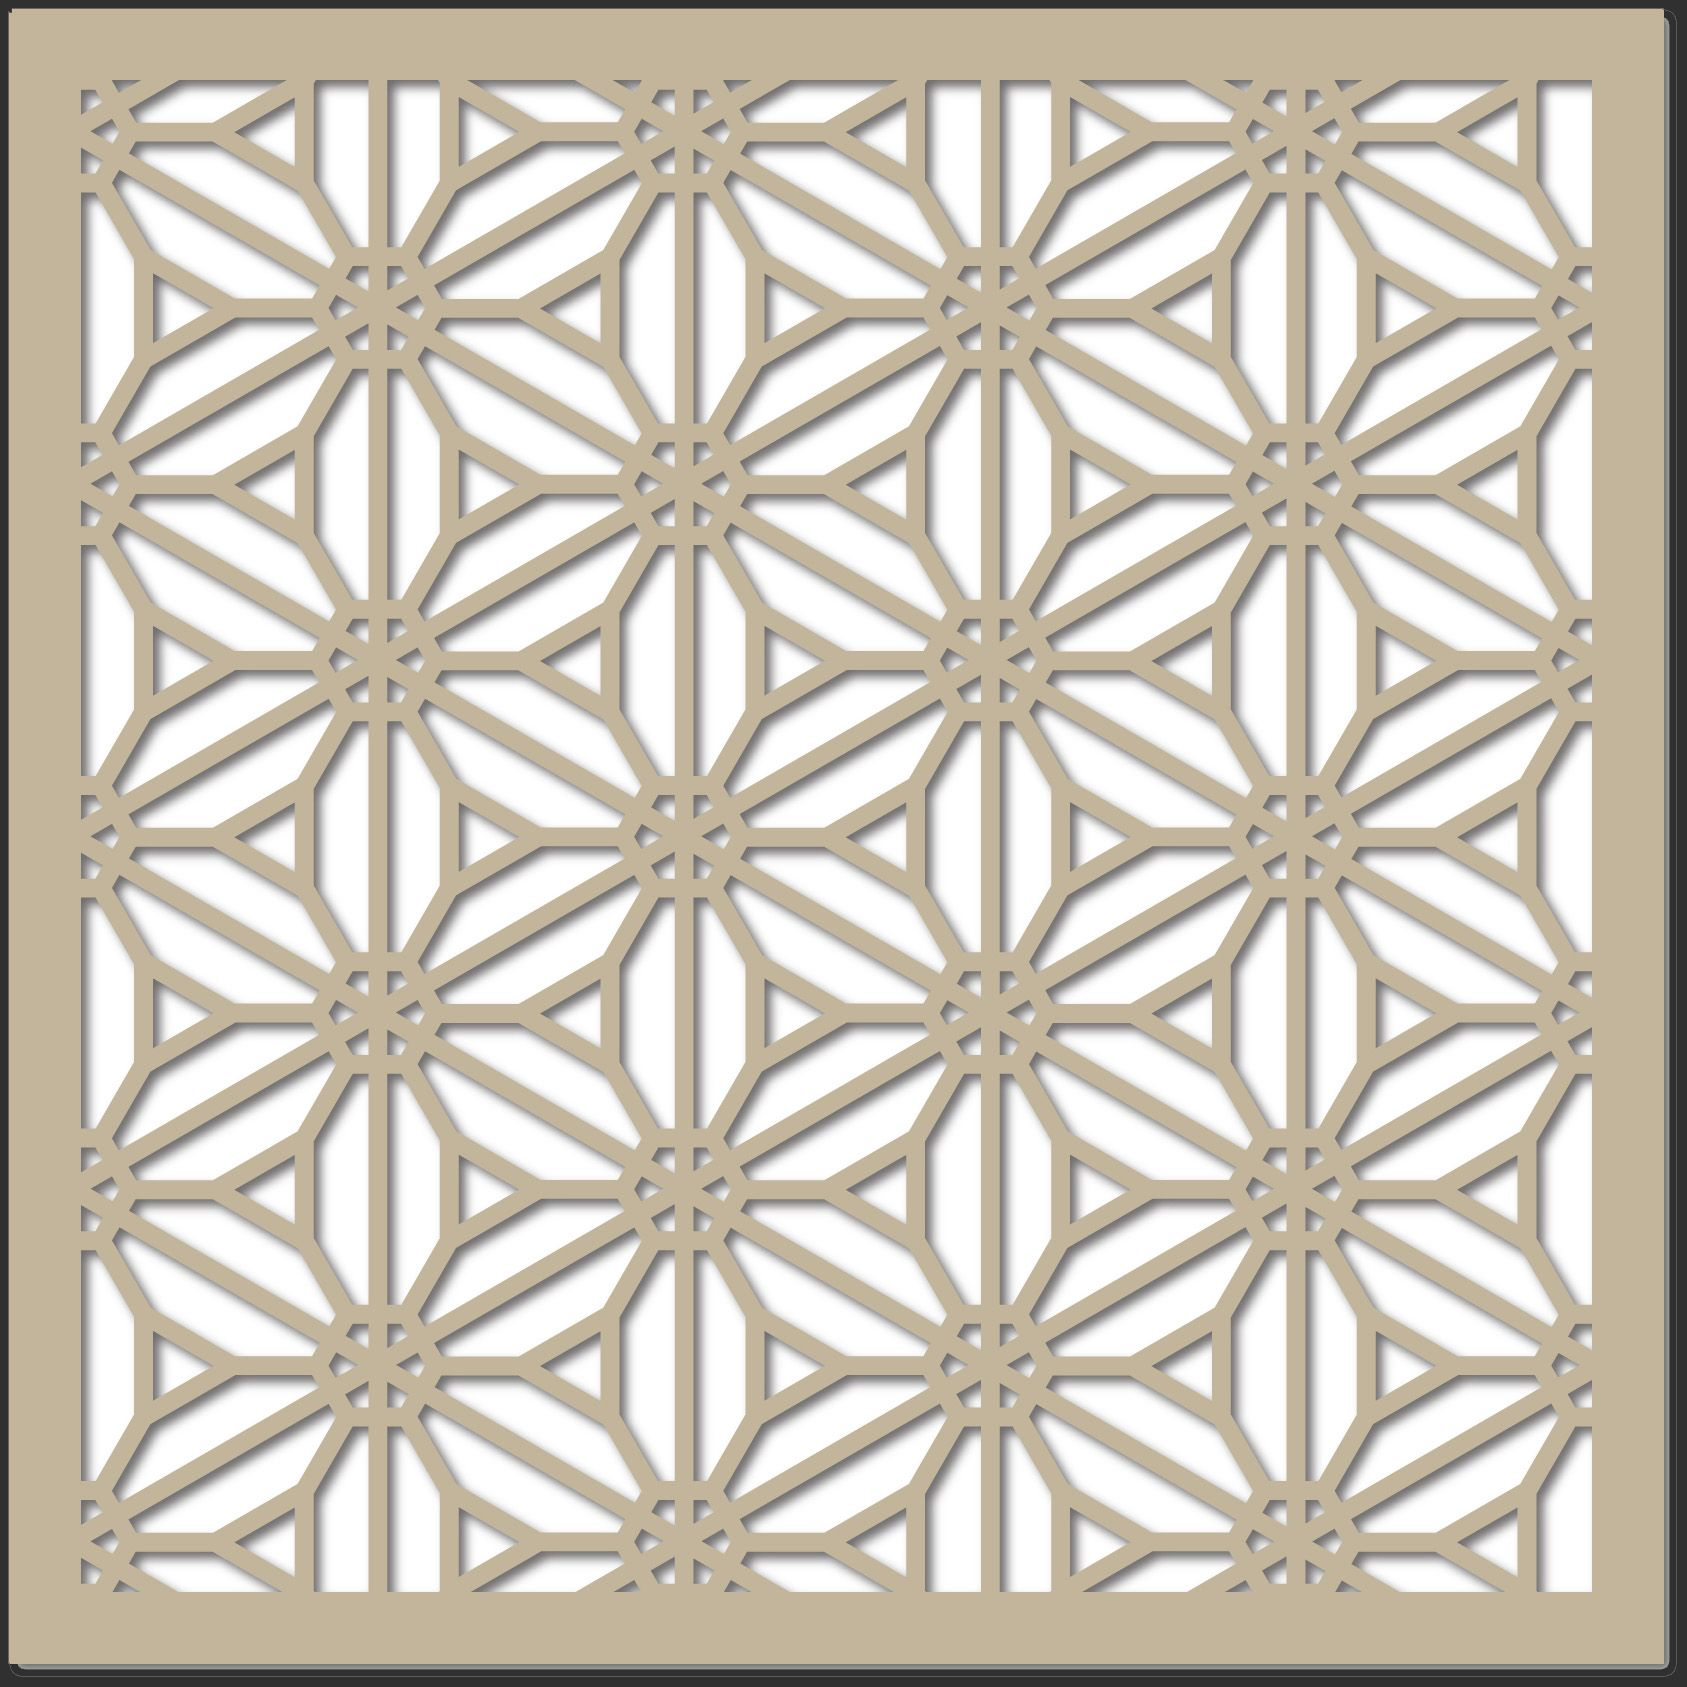 Reverse Flower | desenler | Pinterest | Stenciling, Laser cutting ... for Laser Cut Designs Paper  257ylc